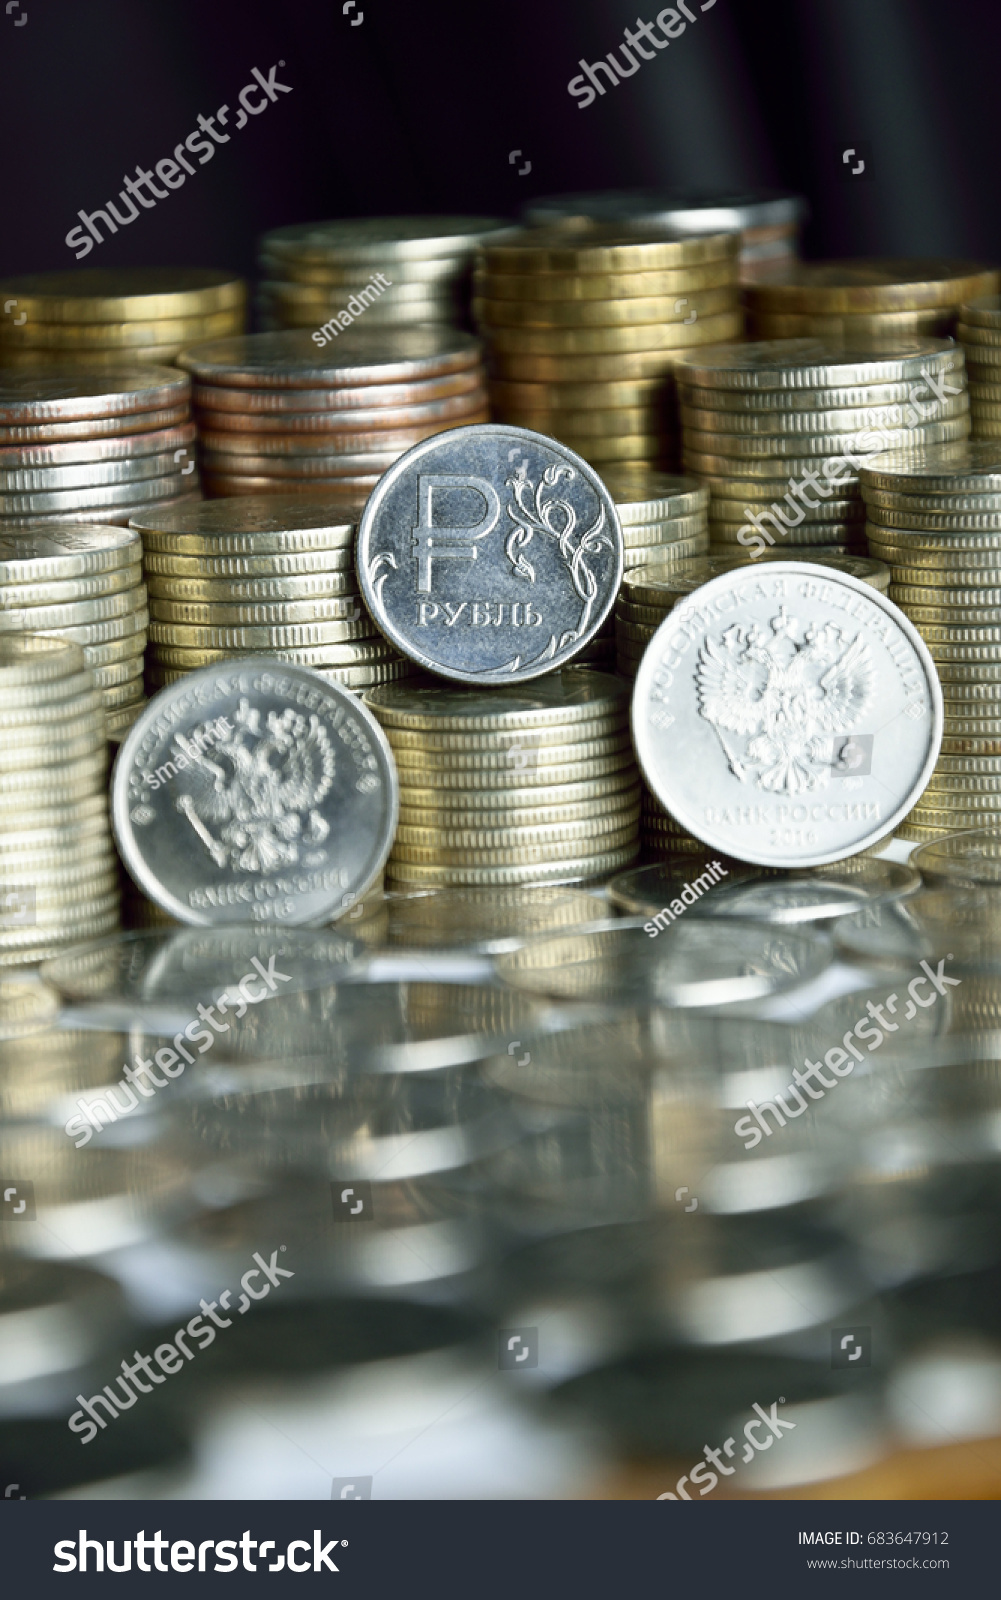 Coin Symbol Russian Ruble On Stacks Stock Photo Royalty Free